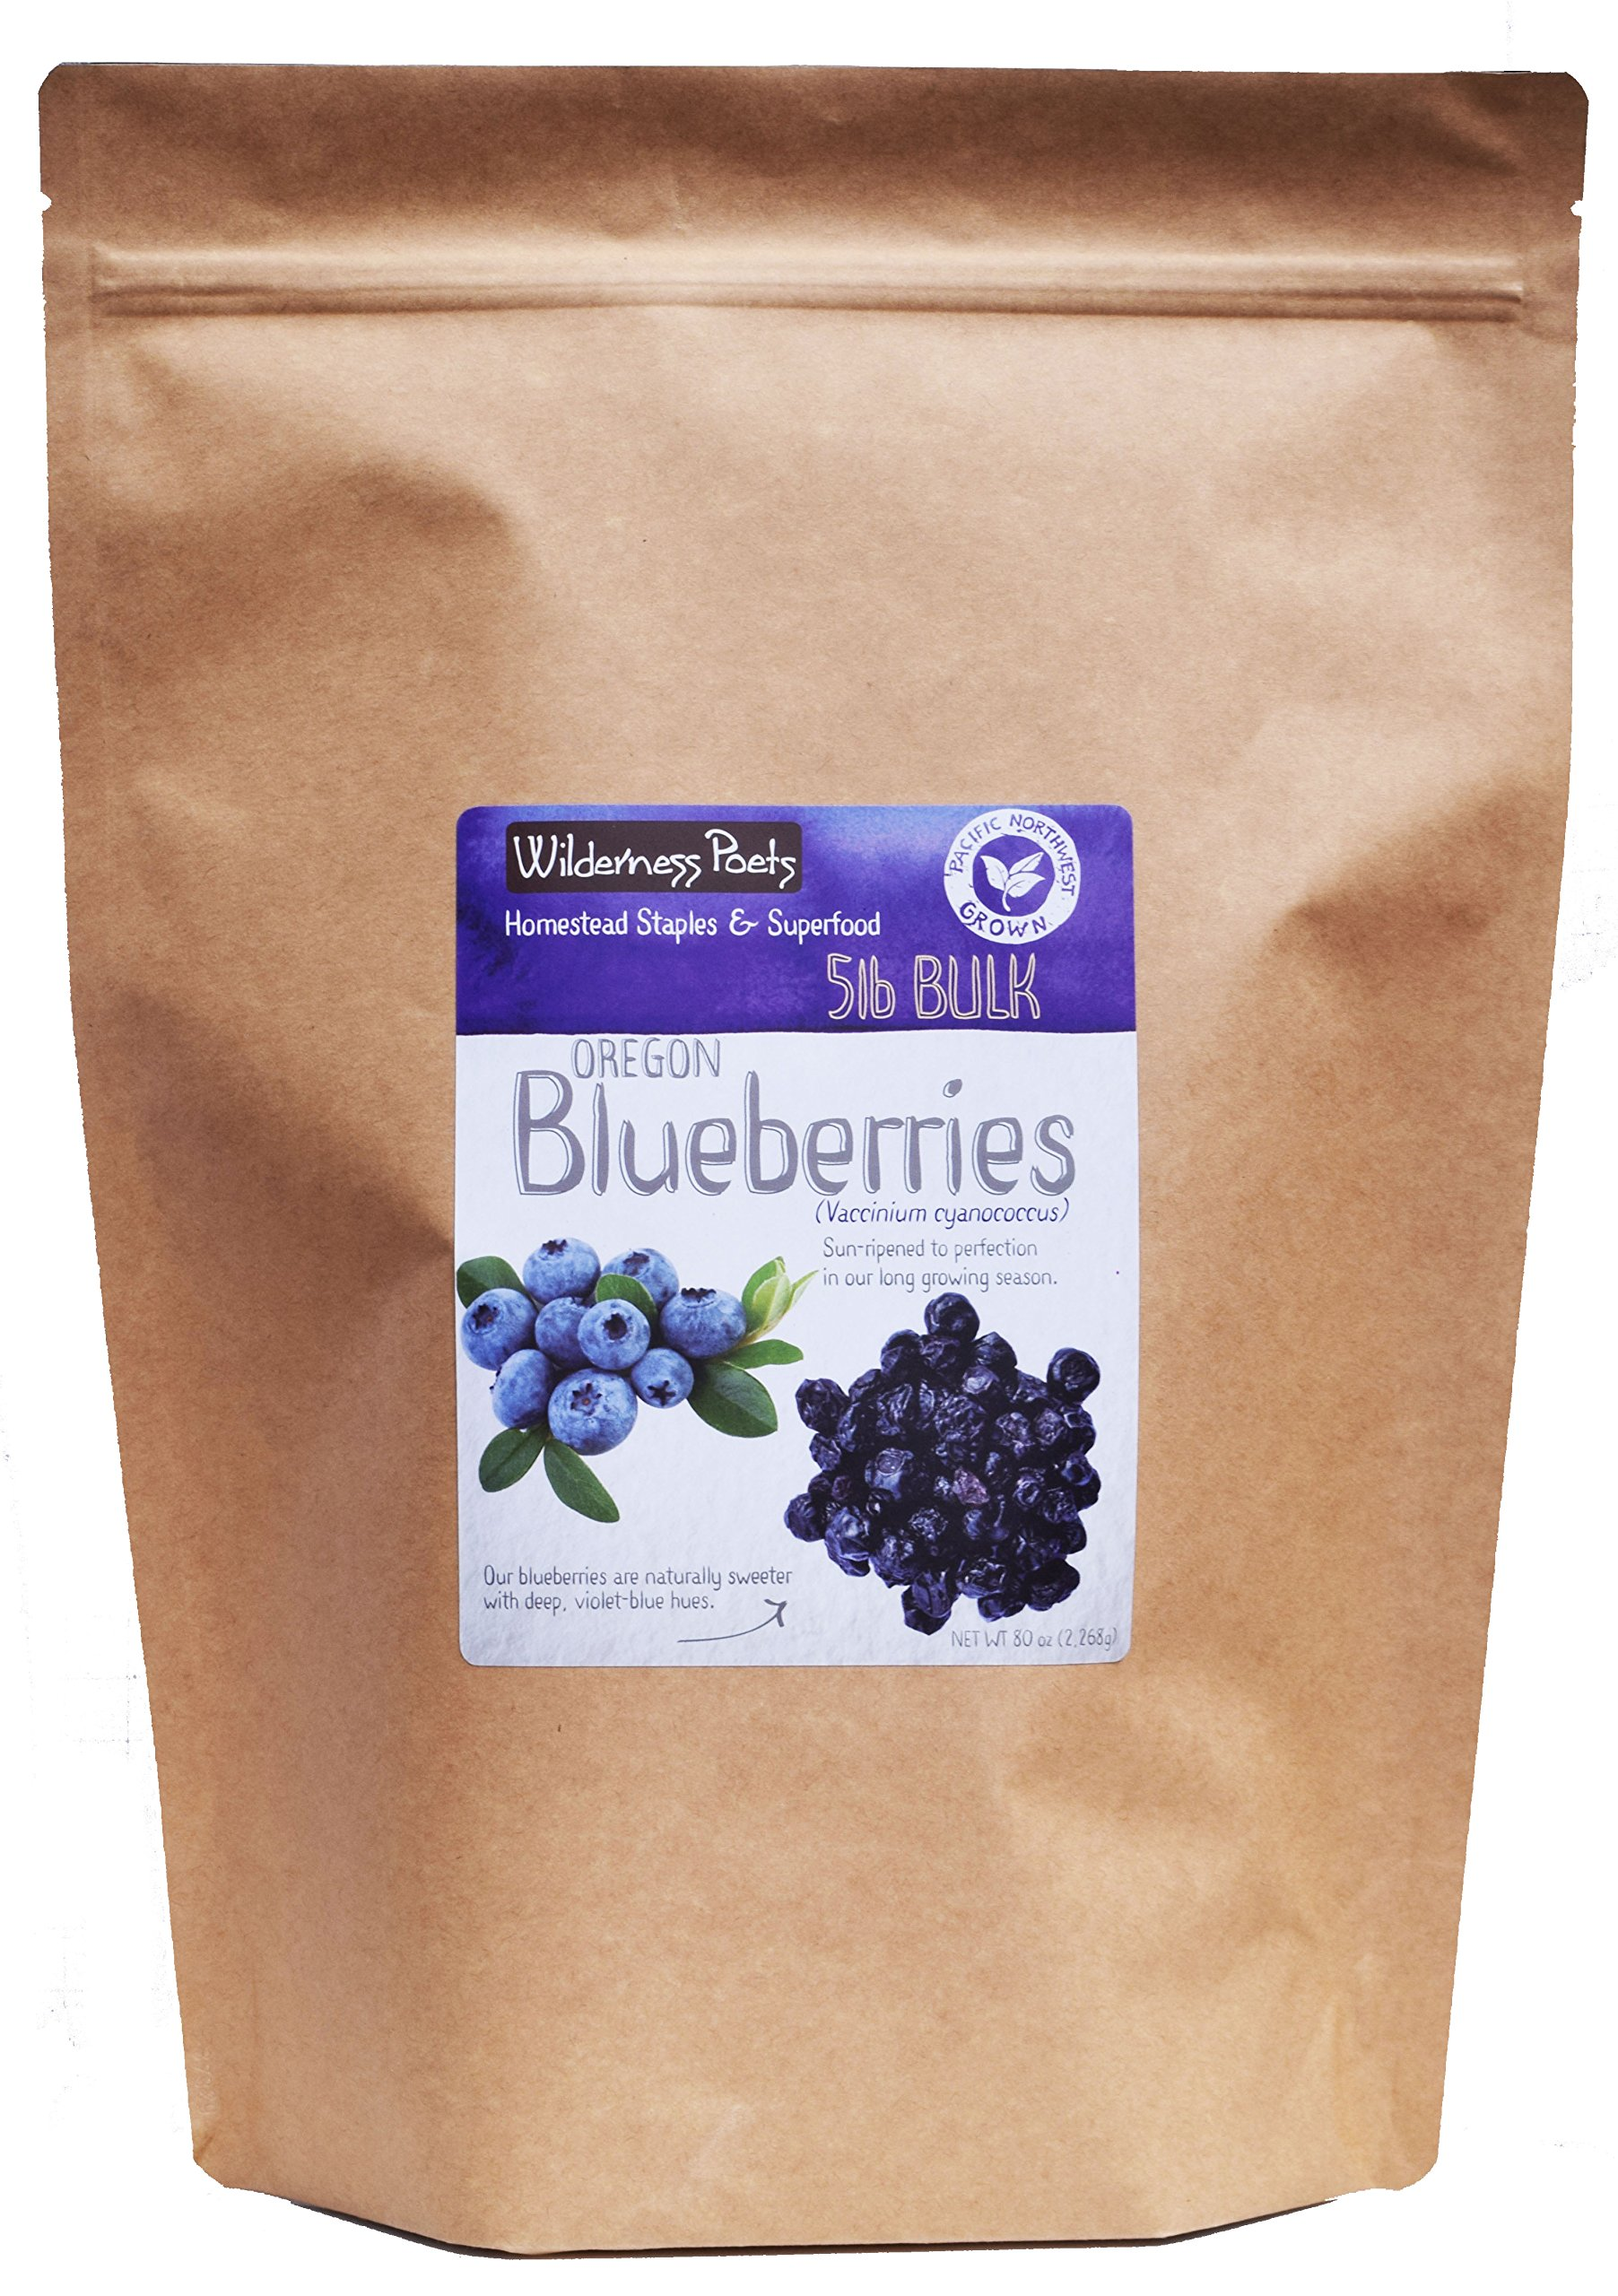 Wilderness Poets Oregon Blueberries (Sweetened with Apples) - Whole, Dried, Fruit - 5 Pound (80 Ounce)